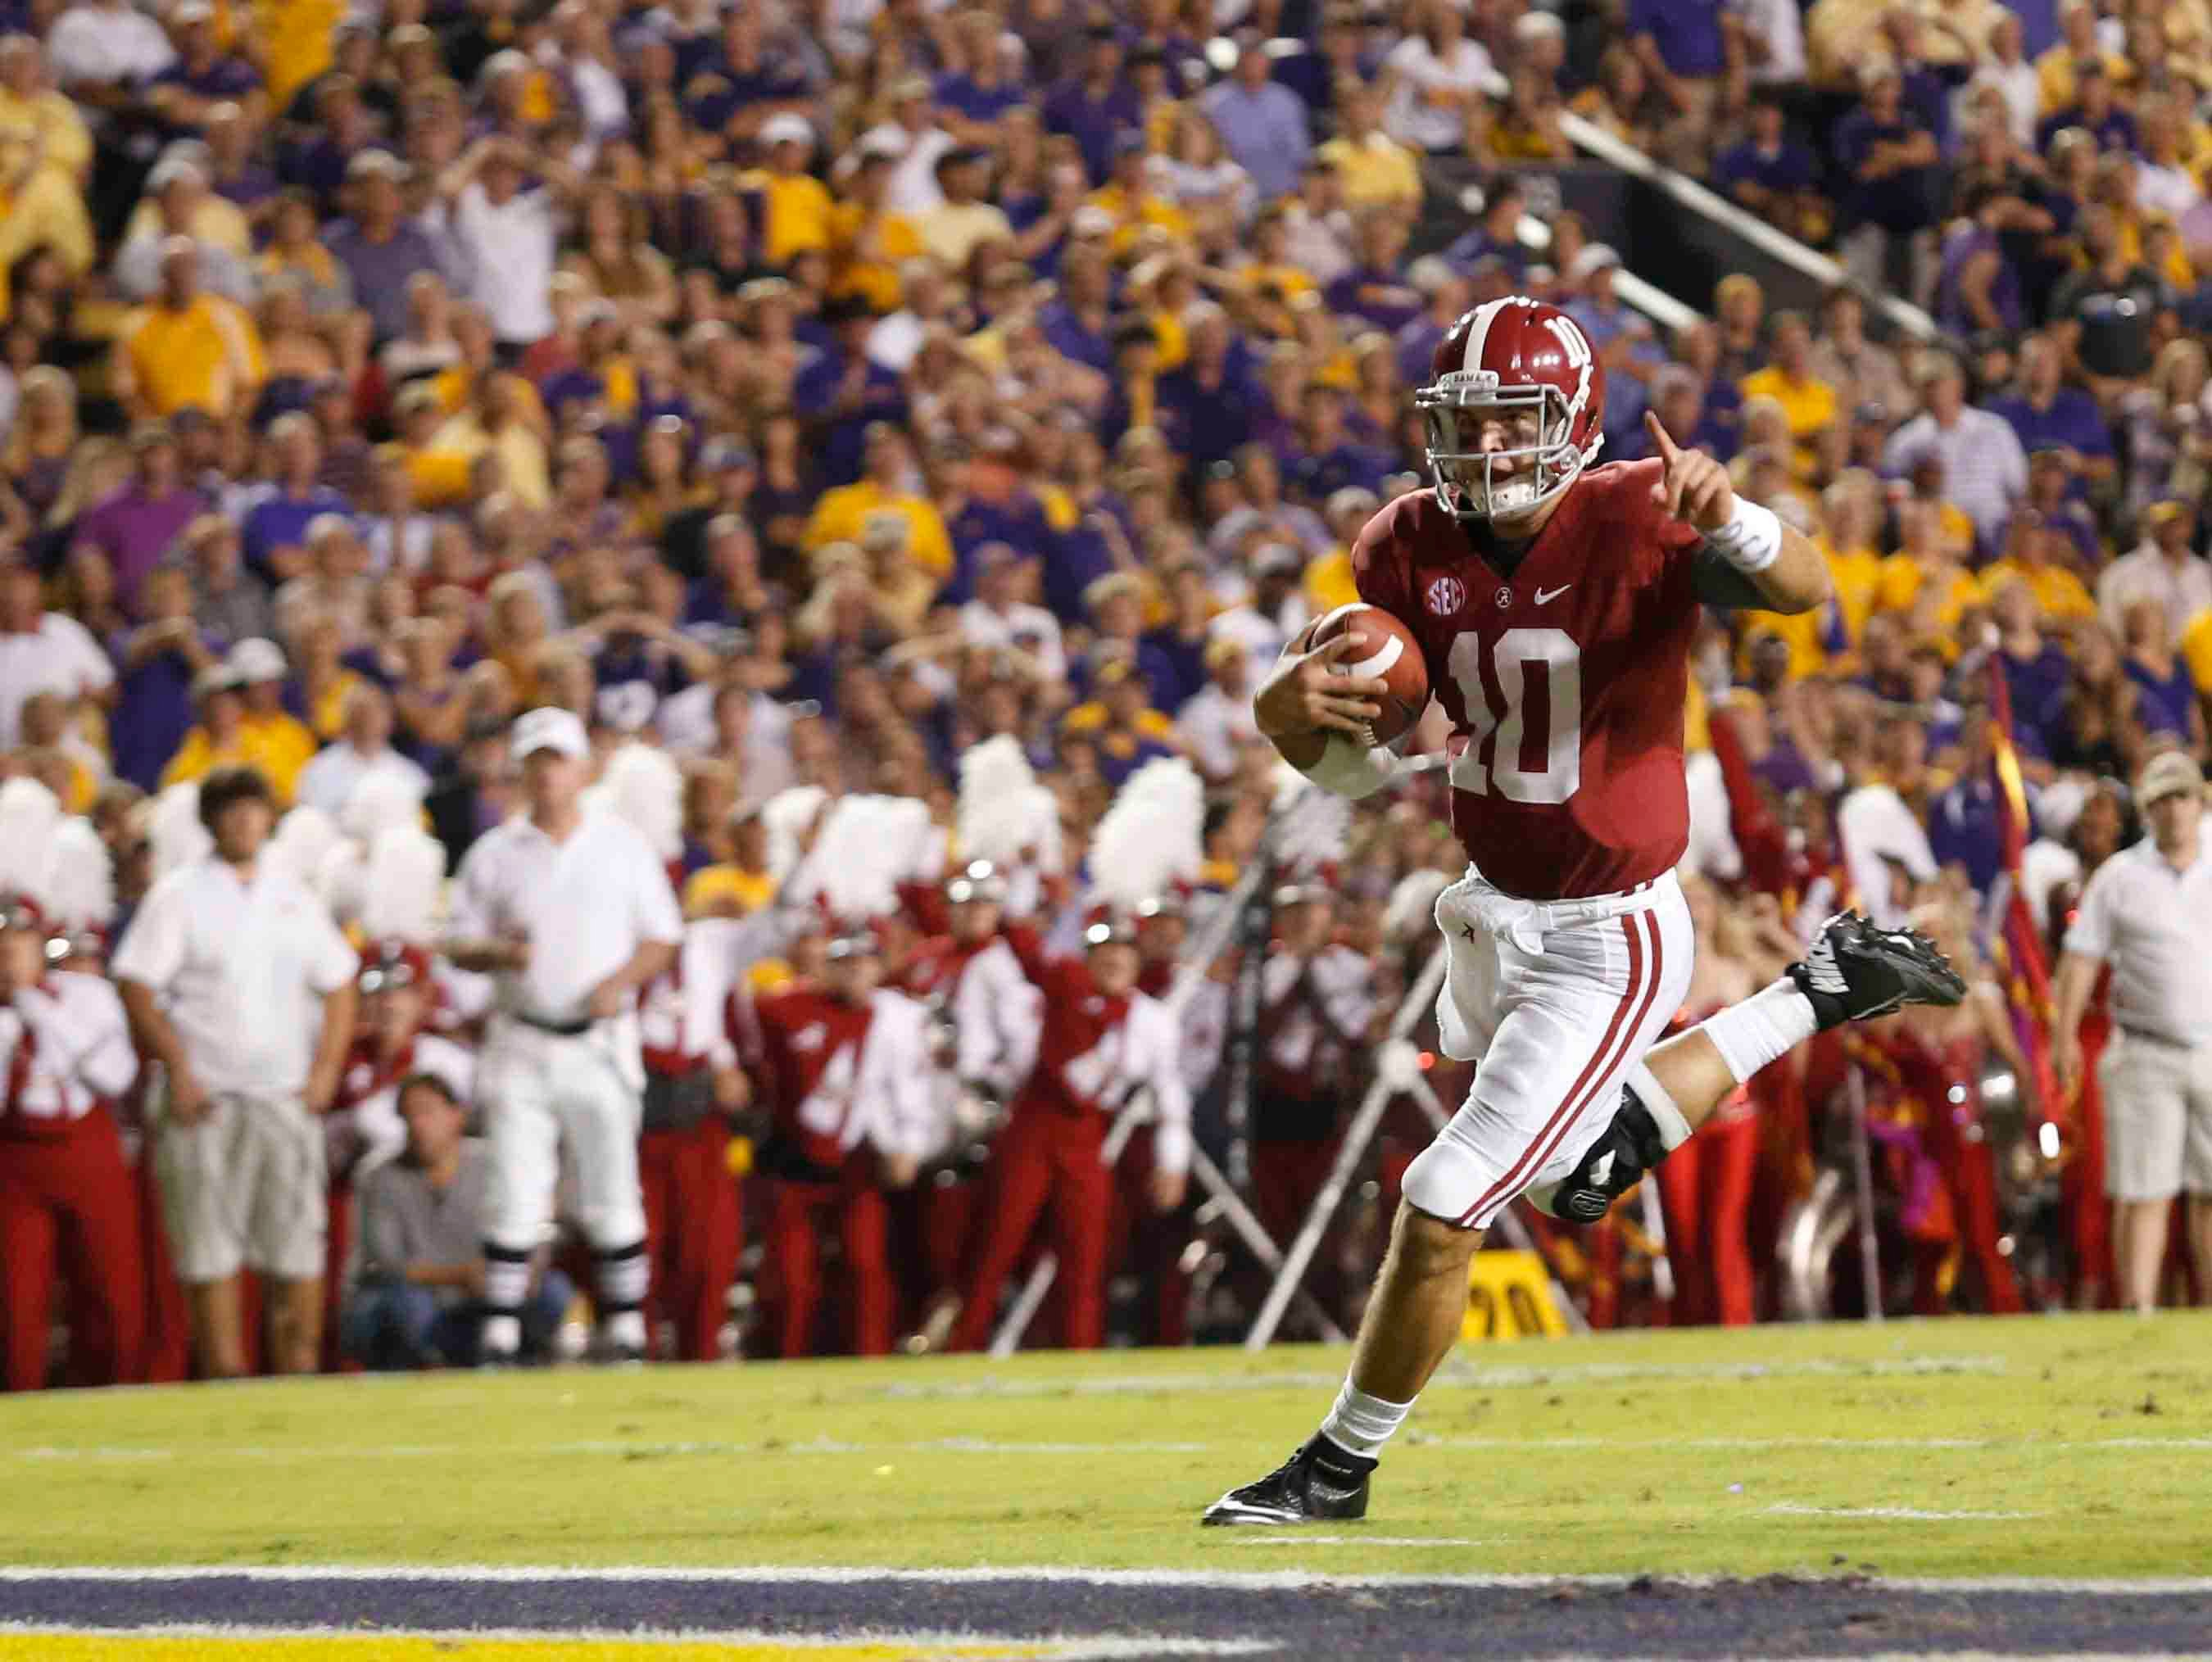 Alabama quarterback AJ McCarron runs for a touchdown against LSU in 2012.